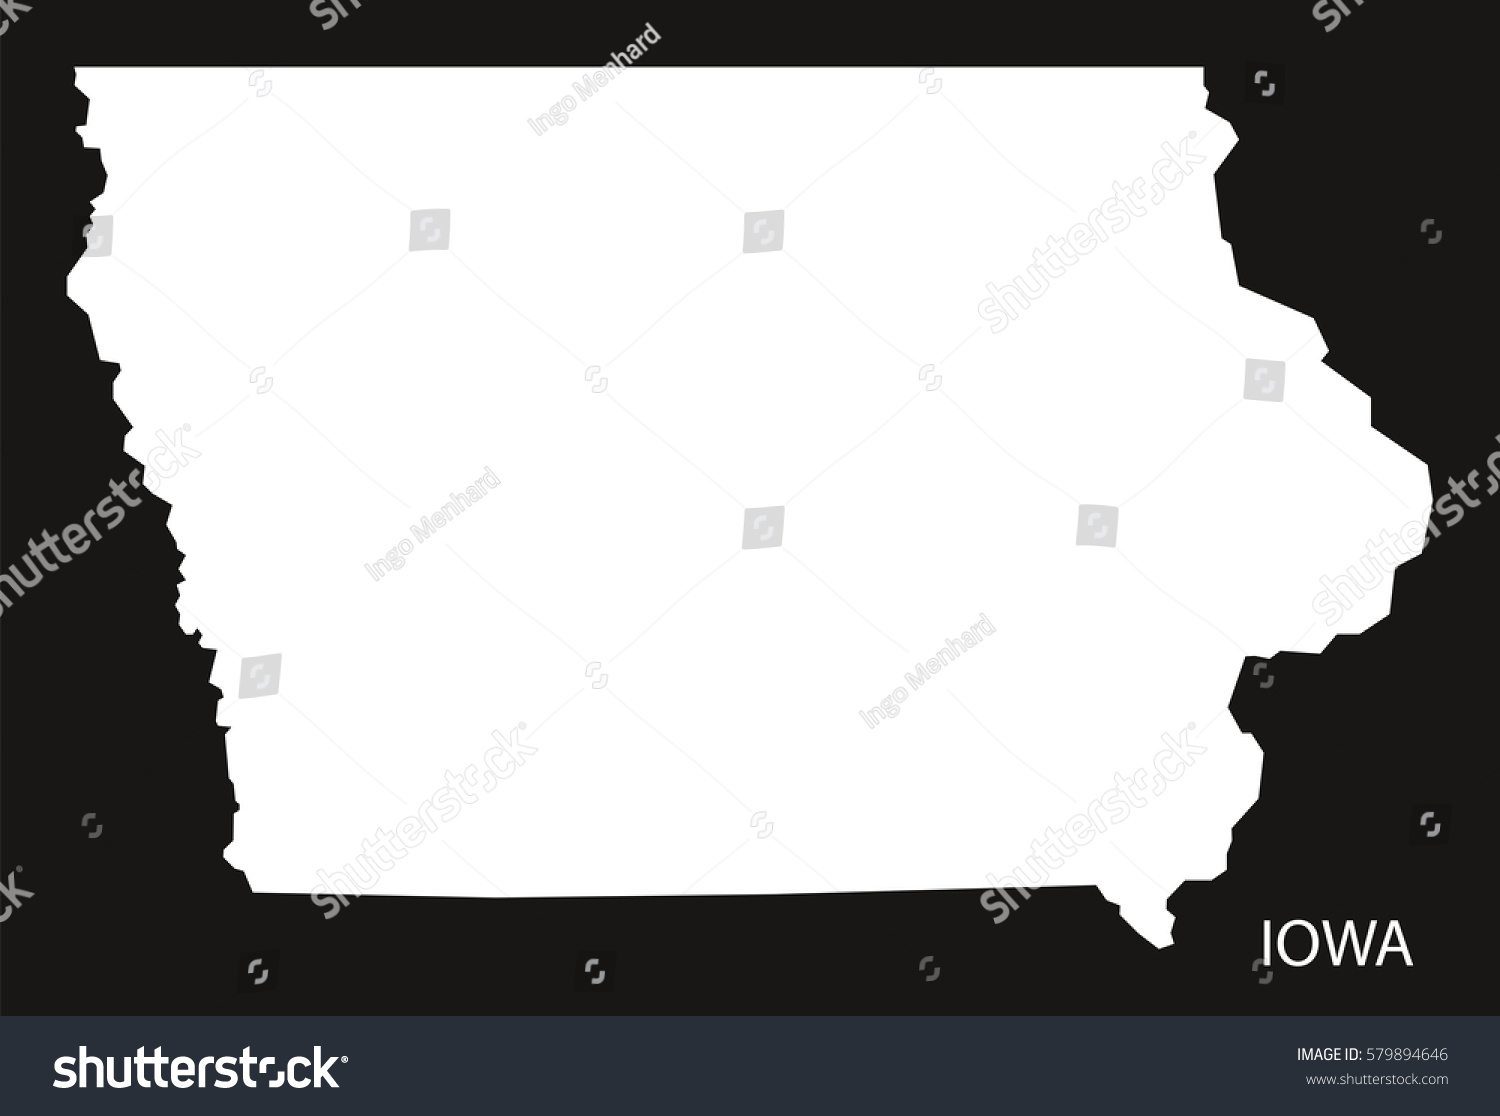 Iowa Usa Map Black Inverted Silhouette Stock Vector - Iowa usa map